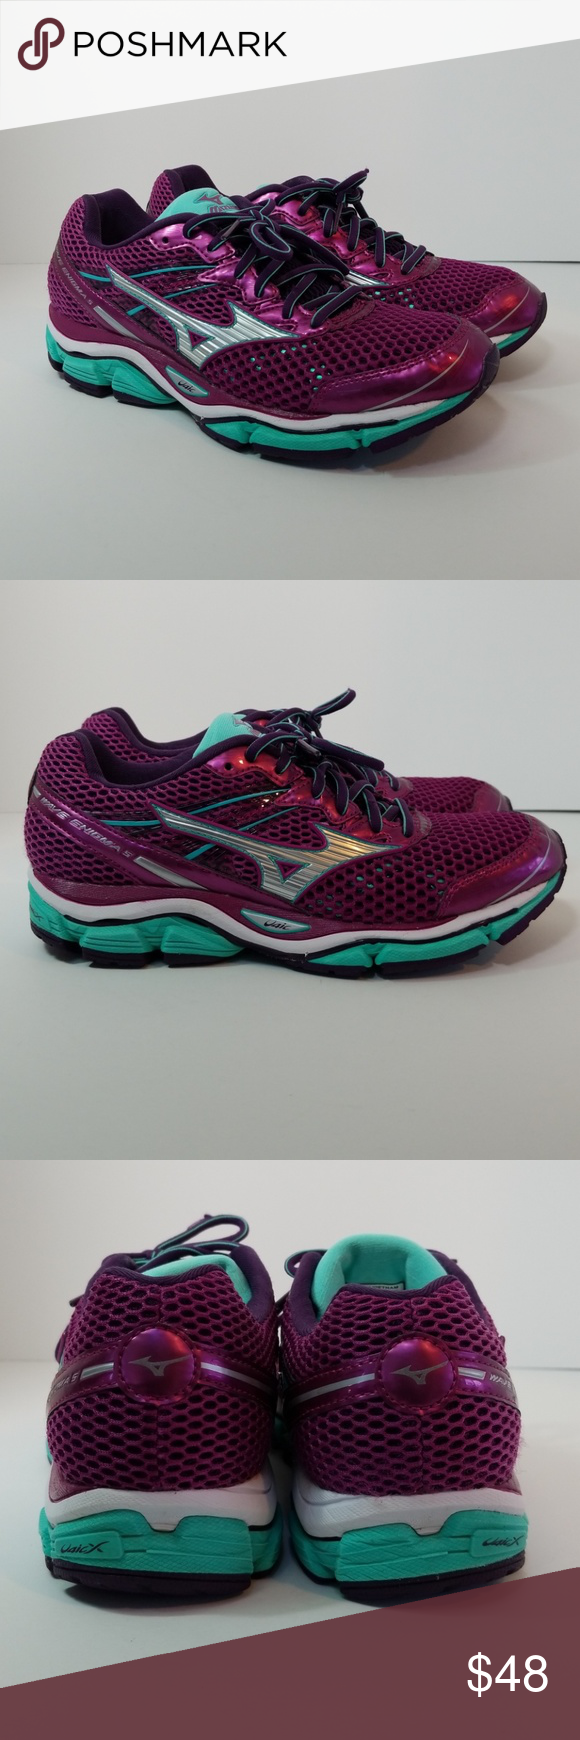 online retailer wholesale sales on feet shots of Mizuno Wave Enigma 5 Running Sneaker Great Condition with light ...